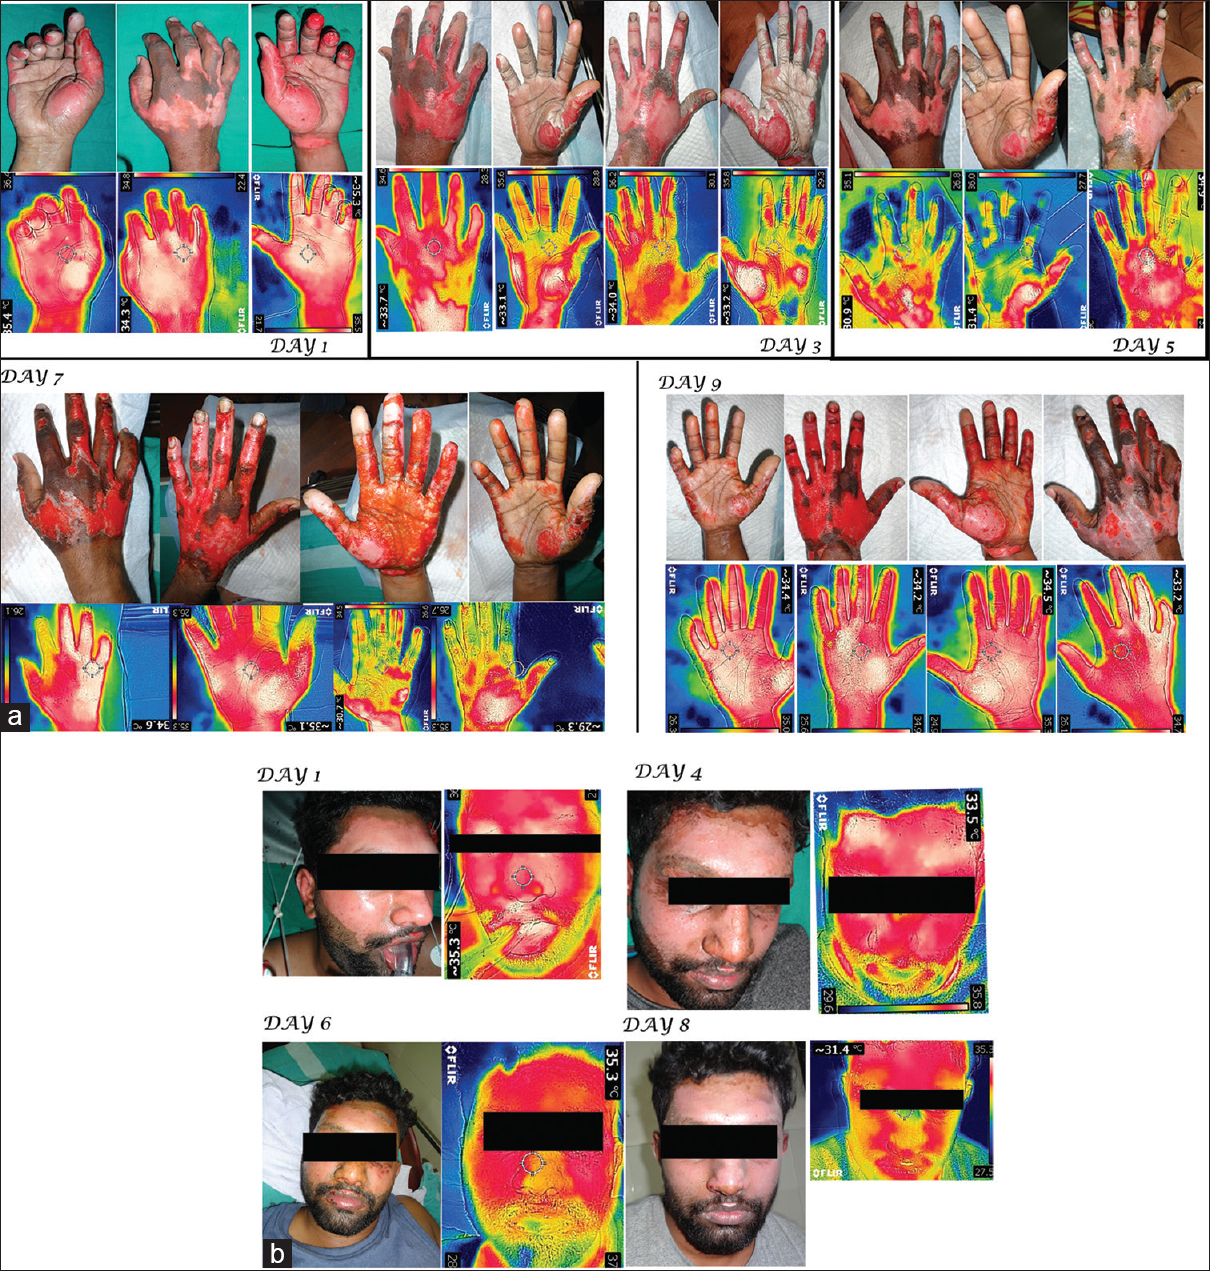 Figure 2: (a) Sequential clinical and infrared thermographic images of flame burns involving bilateral hand treated with hyperbaric oxygen therapy. (b) Sequential clinical and infrared thermographic images of flame burns involving face treated with hyperbaric oxygen therapy